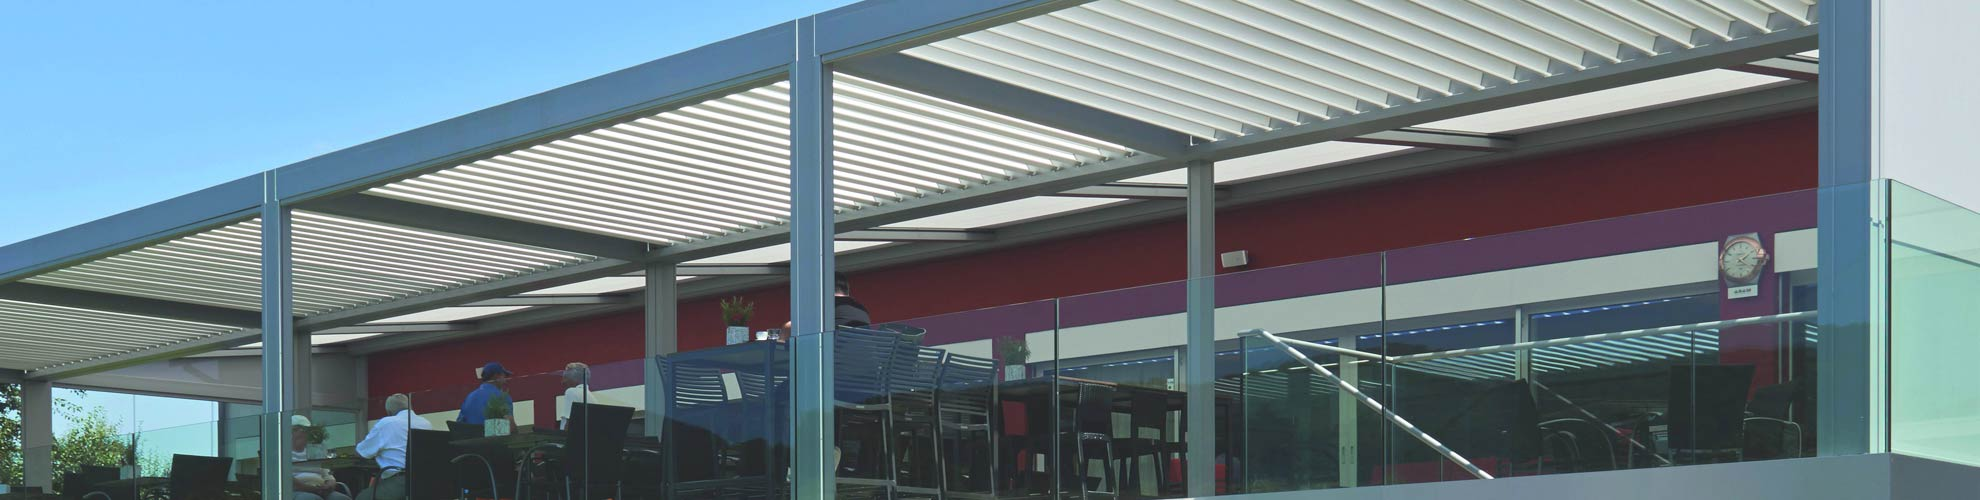 Louvered Roof And Pergolas Manufacturer Kensington